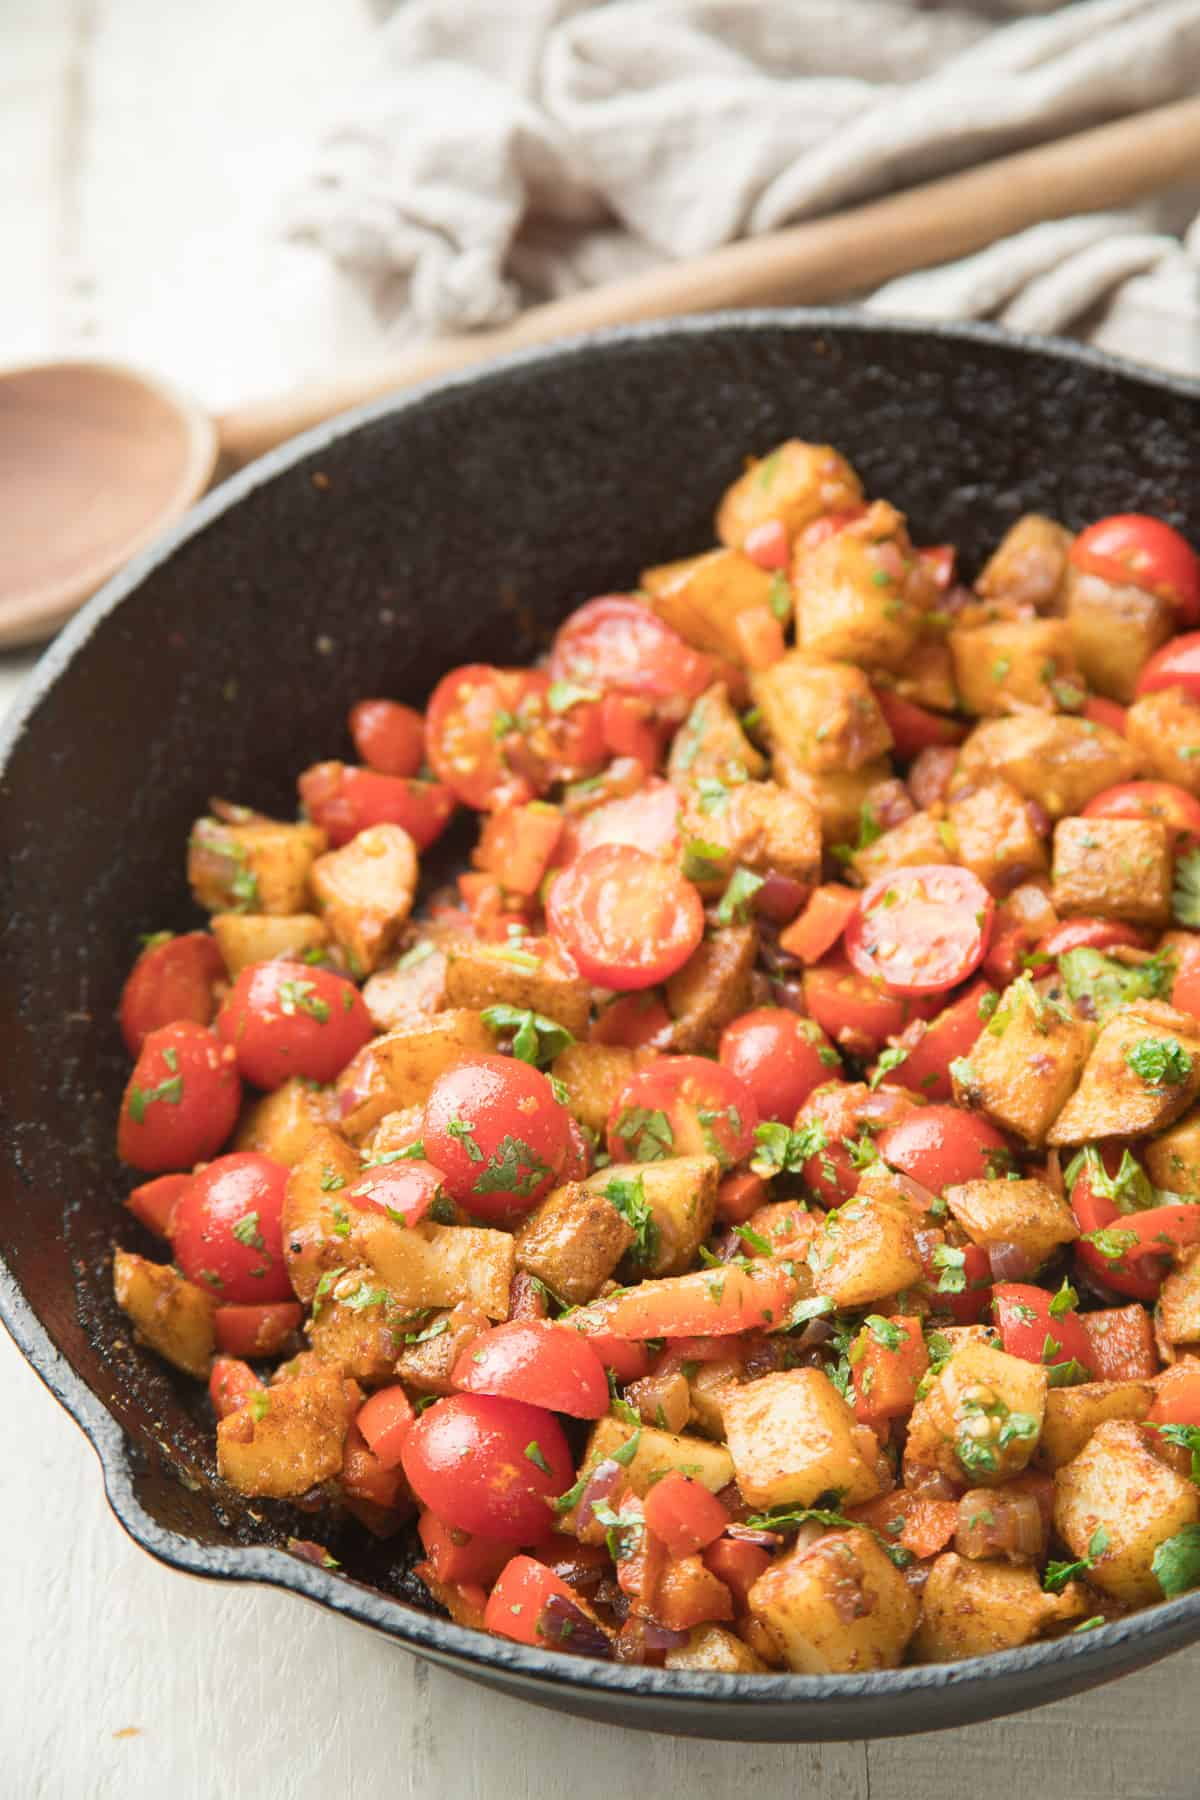 Veggies and Potatoes in a Skillet